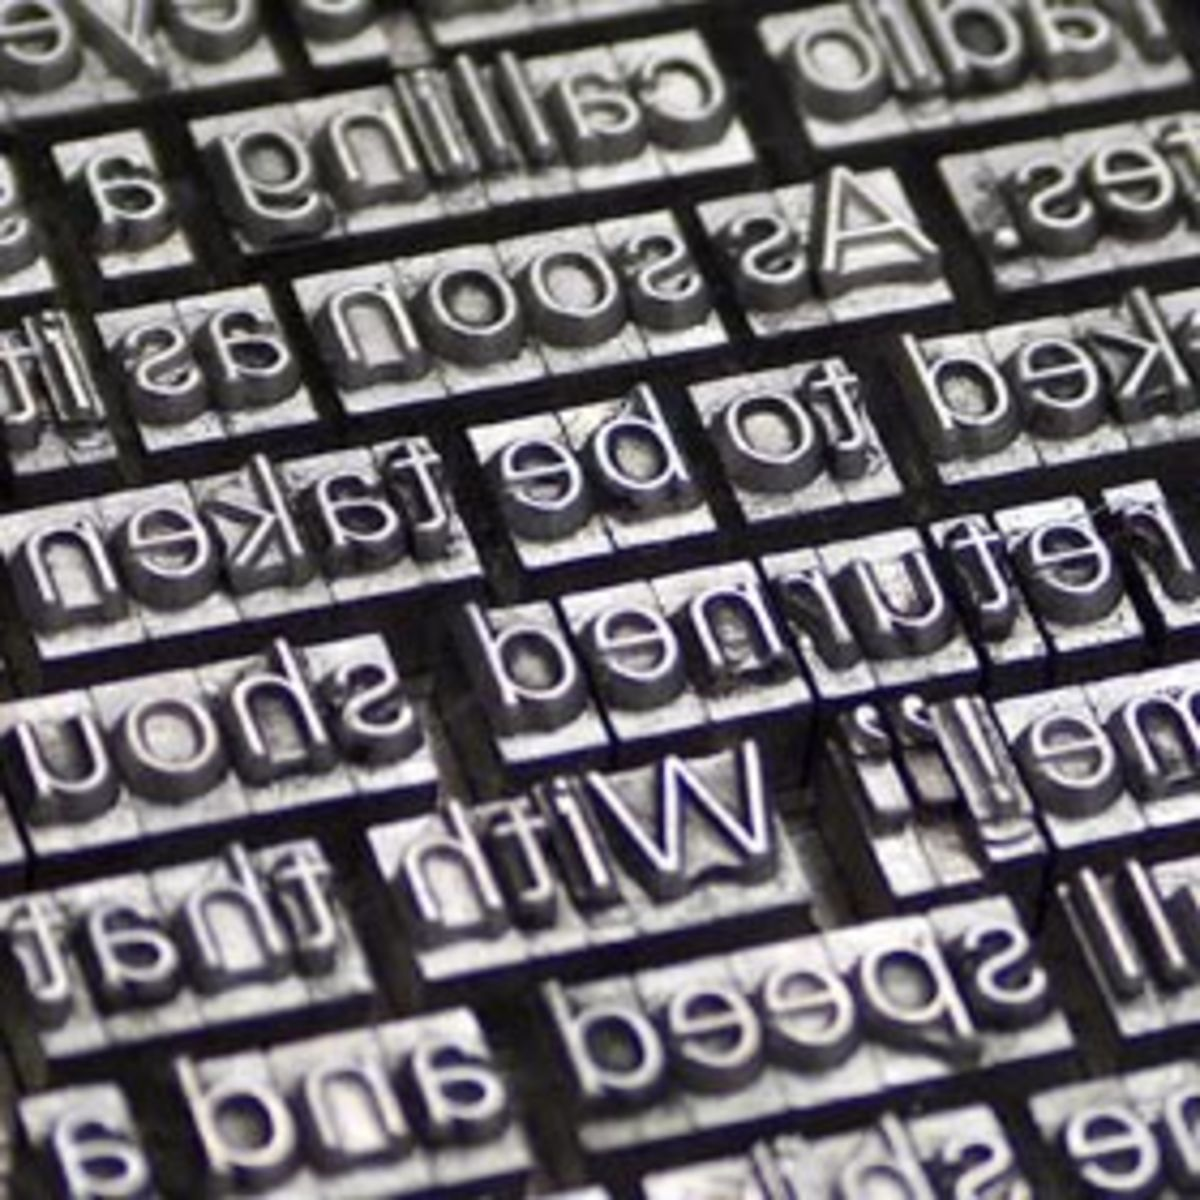 The typesetter's role in modern publishing: what is typesetting?